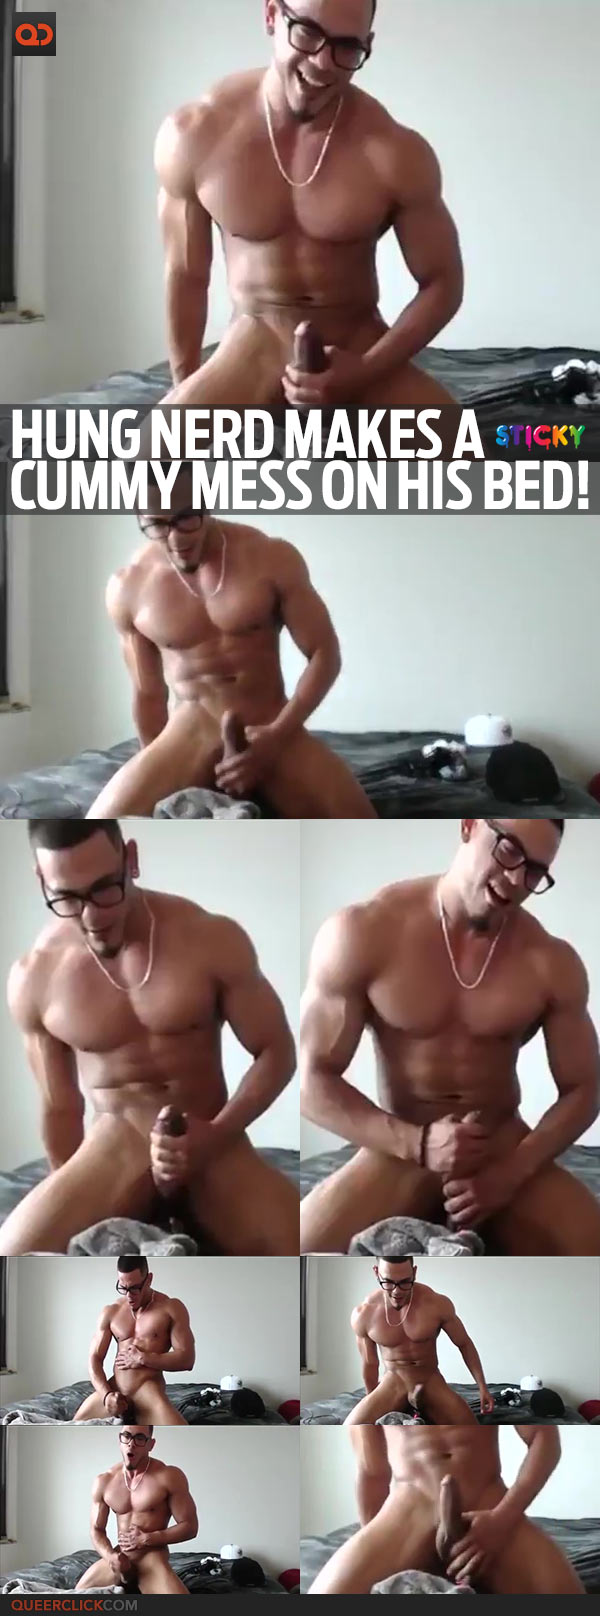 Hung Nerd Makes A Cummy Mess On His Bed!